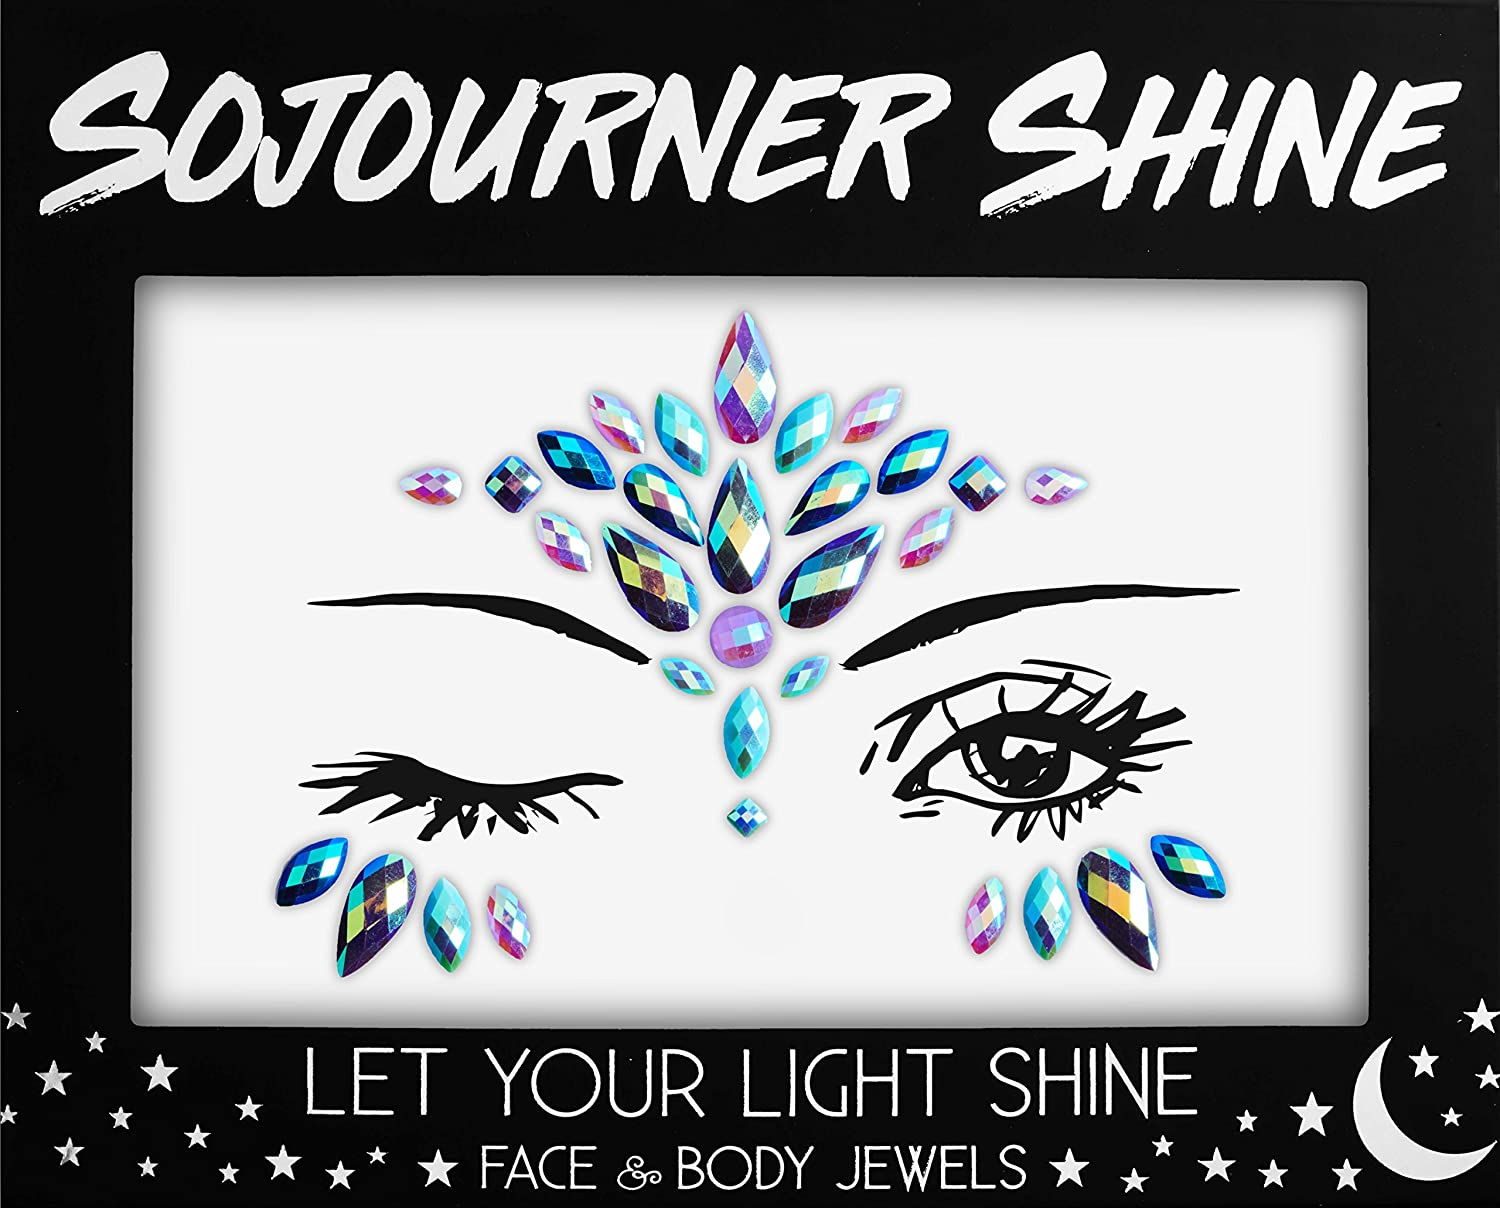 Face Jewels Glitter Gems Rhinestones – Eye Body Jewels Gems | Rhinestone Stickers | Body Glitter Festival Rave & Party Accessories by SoJourner (Unicorn Tears) SoJourner Bags